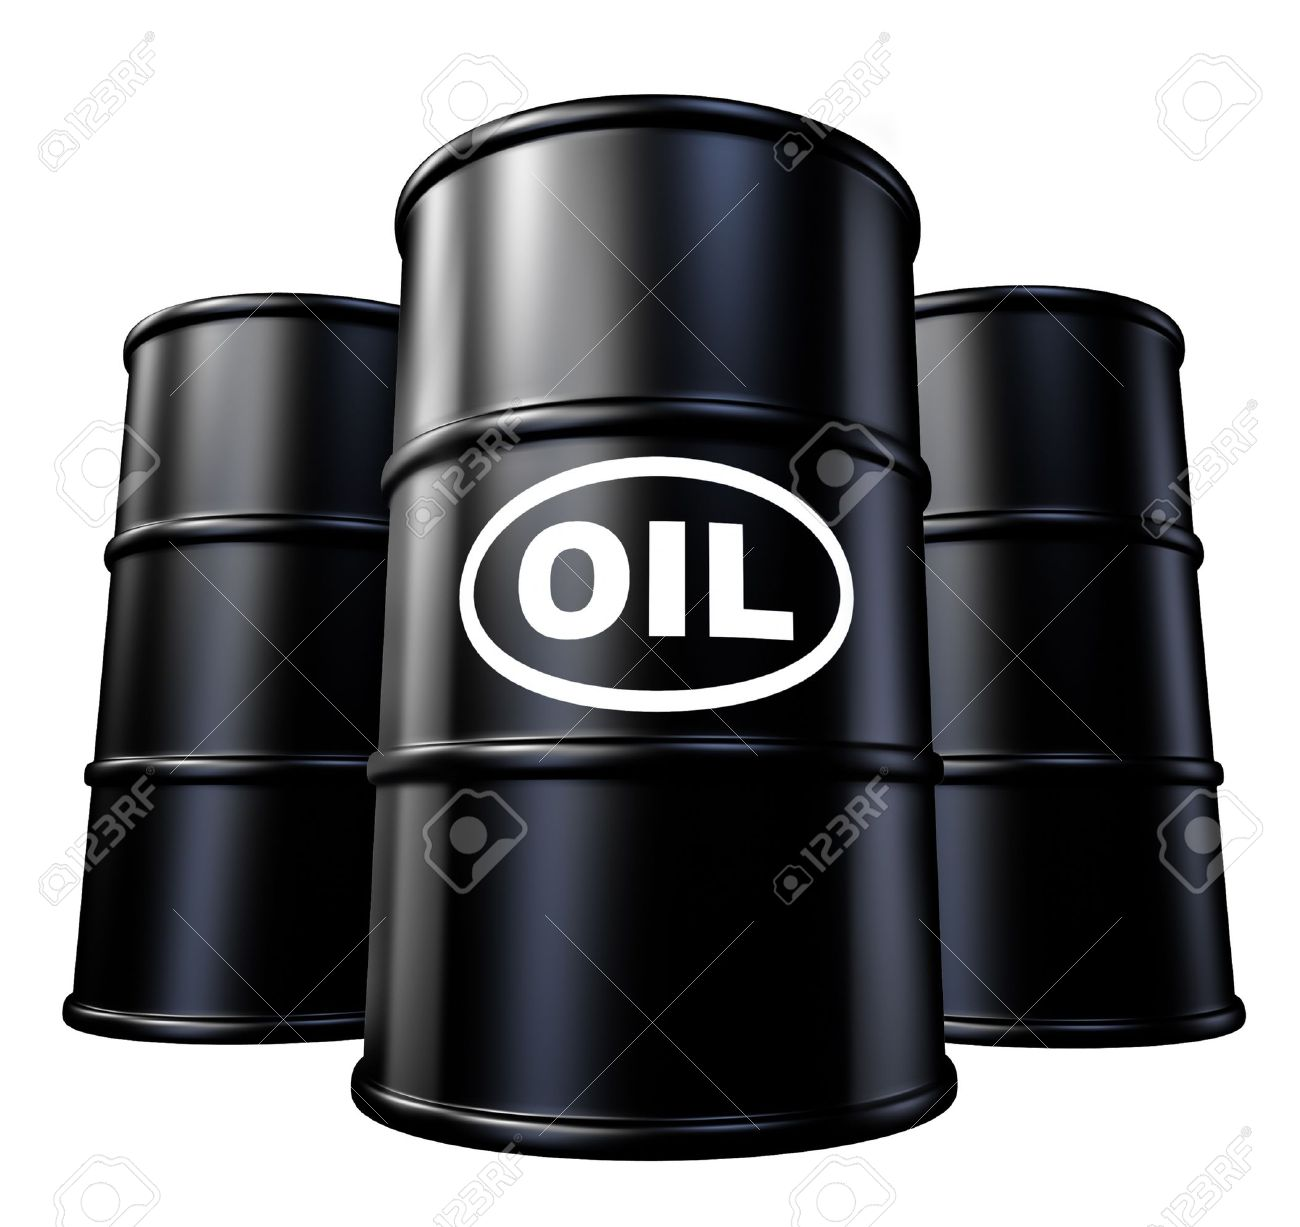 Is Oil A Fossil Fuel >> Oil Barrels And Drum Containers Representing The Gasoline Energy